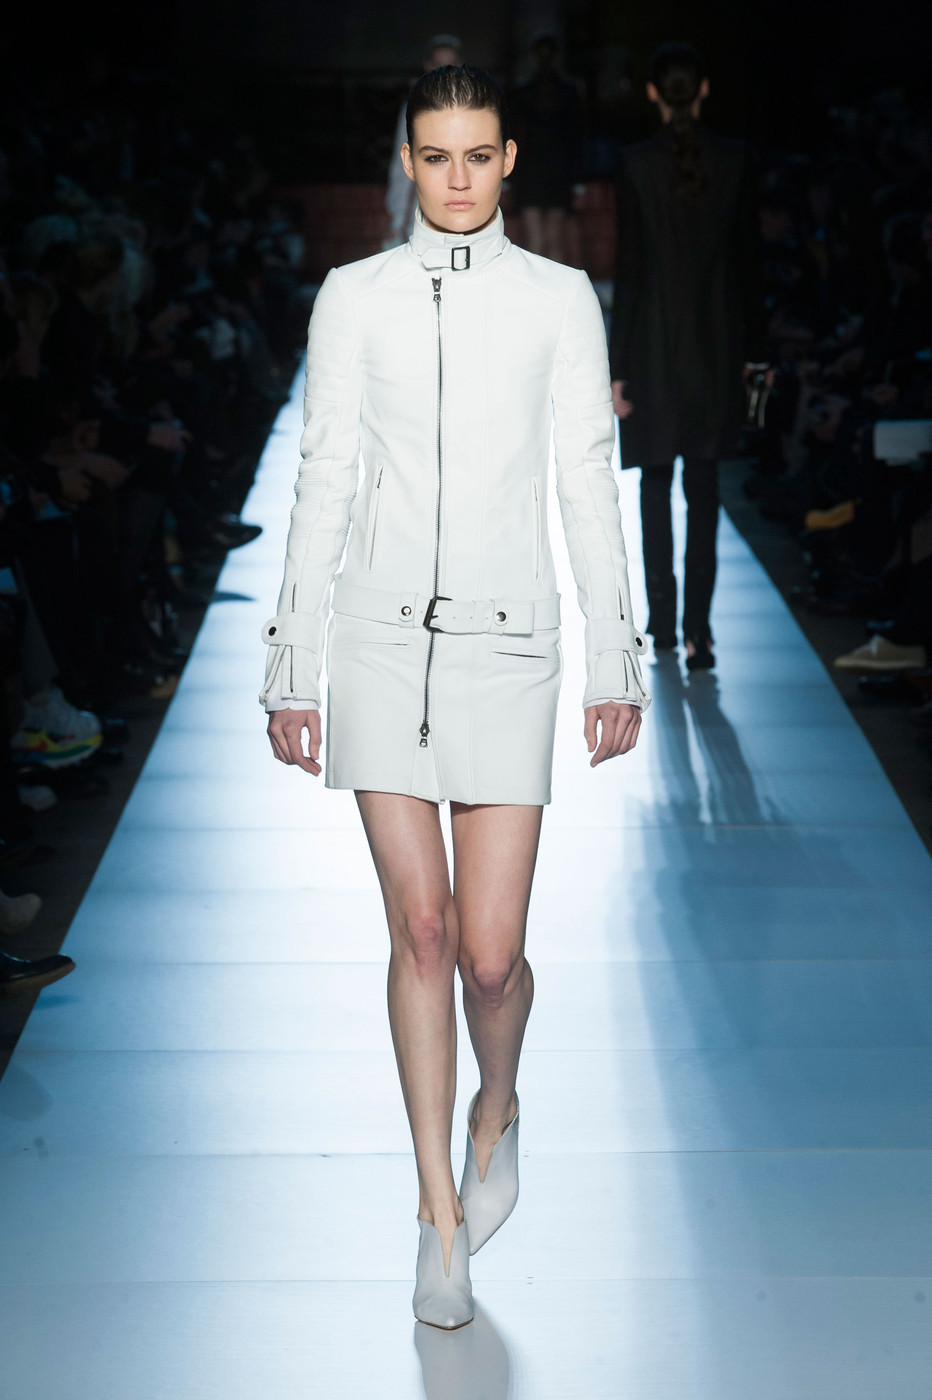 Diesel Black Gold all white leather dress, Fall/Winter 2013-2014 RTW collection